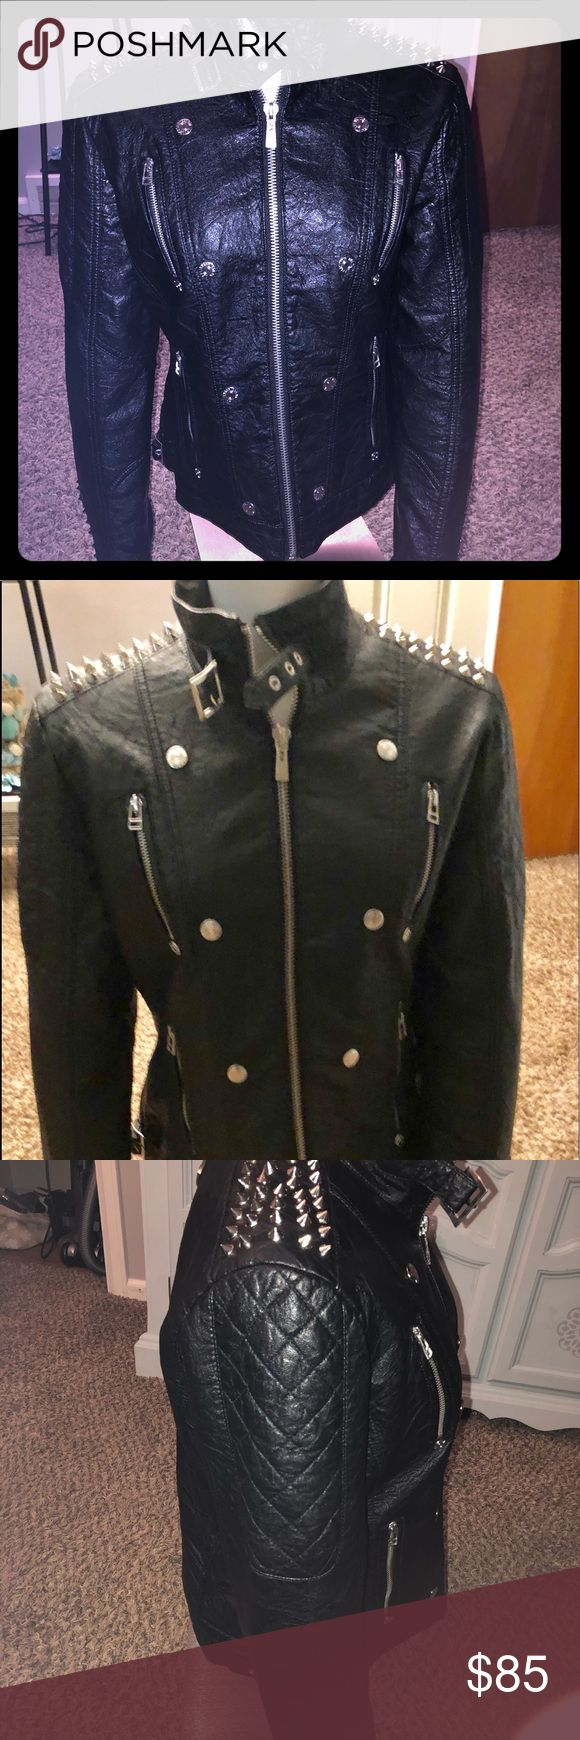 Affliction faux leather jacket This jacket is absolutely